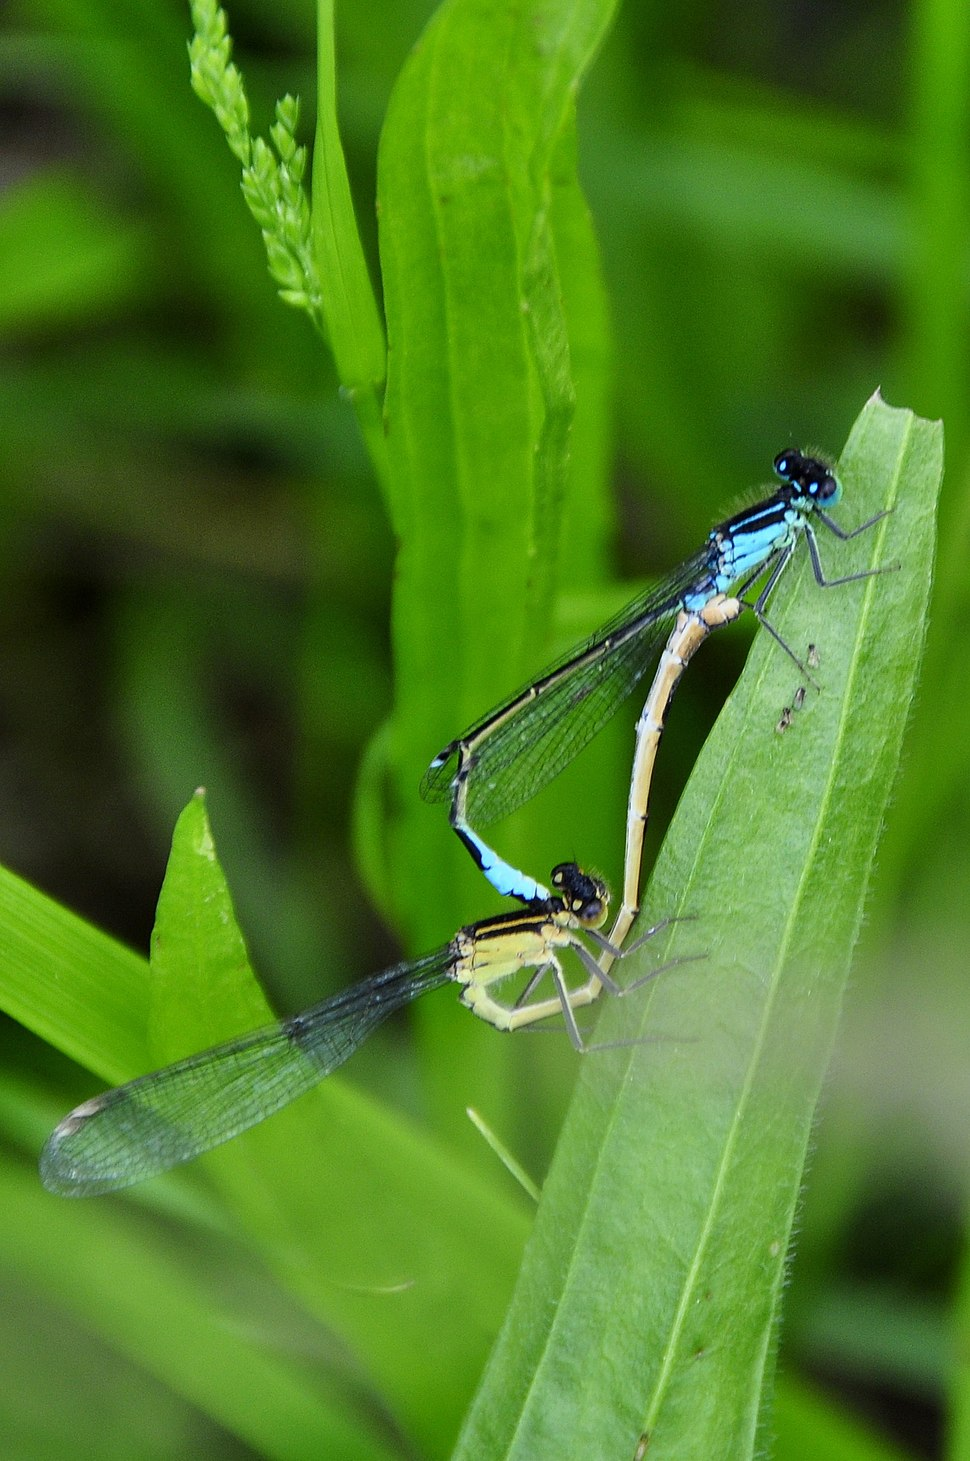 Dragonfly insect pairing